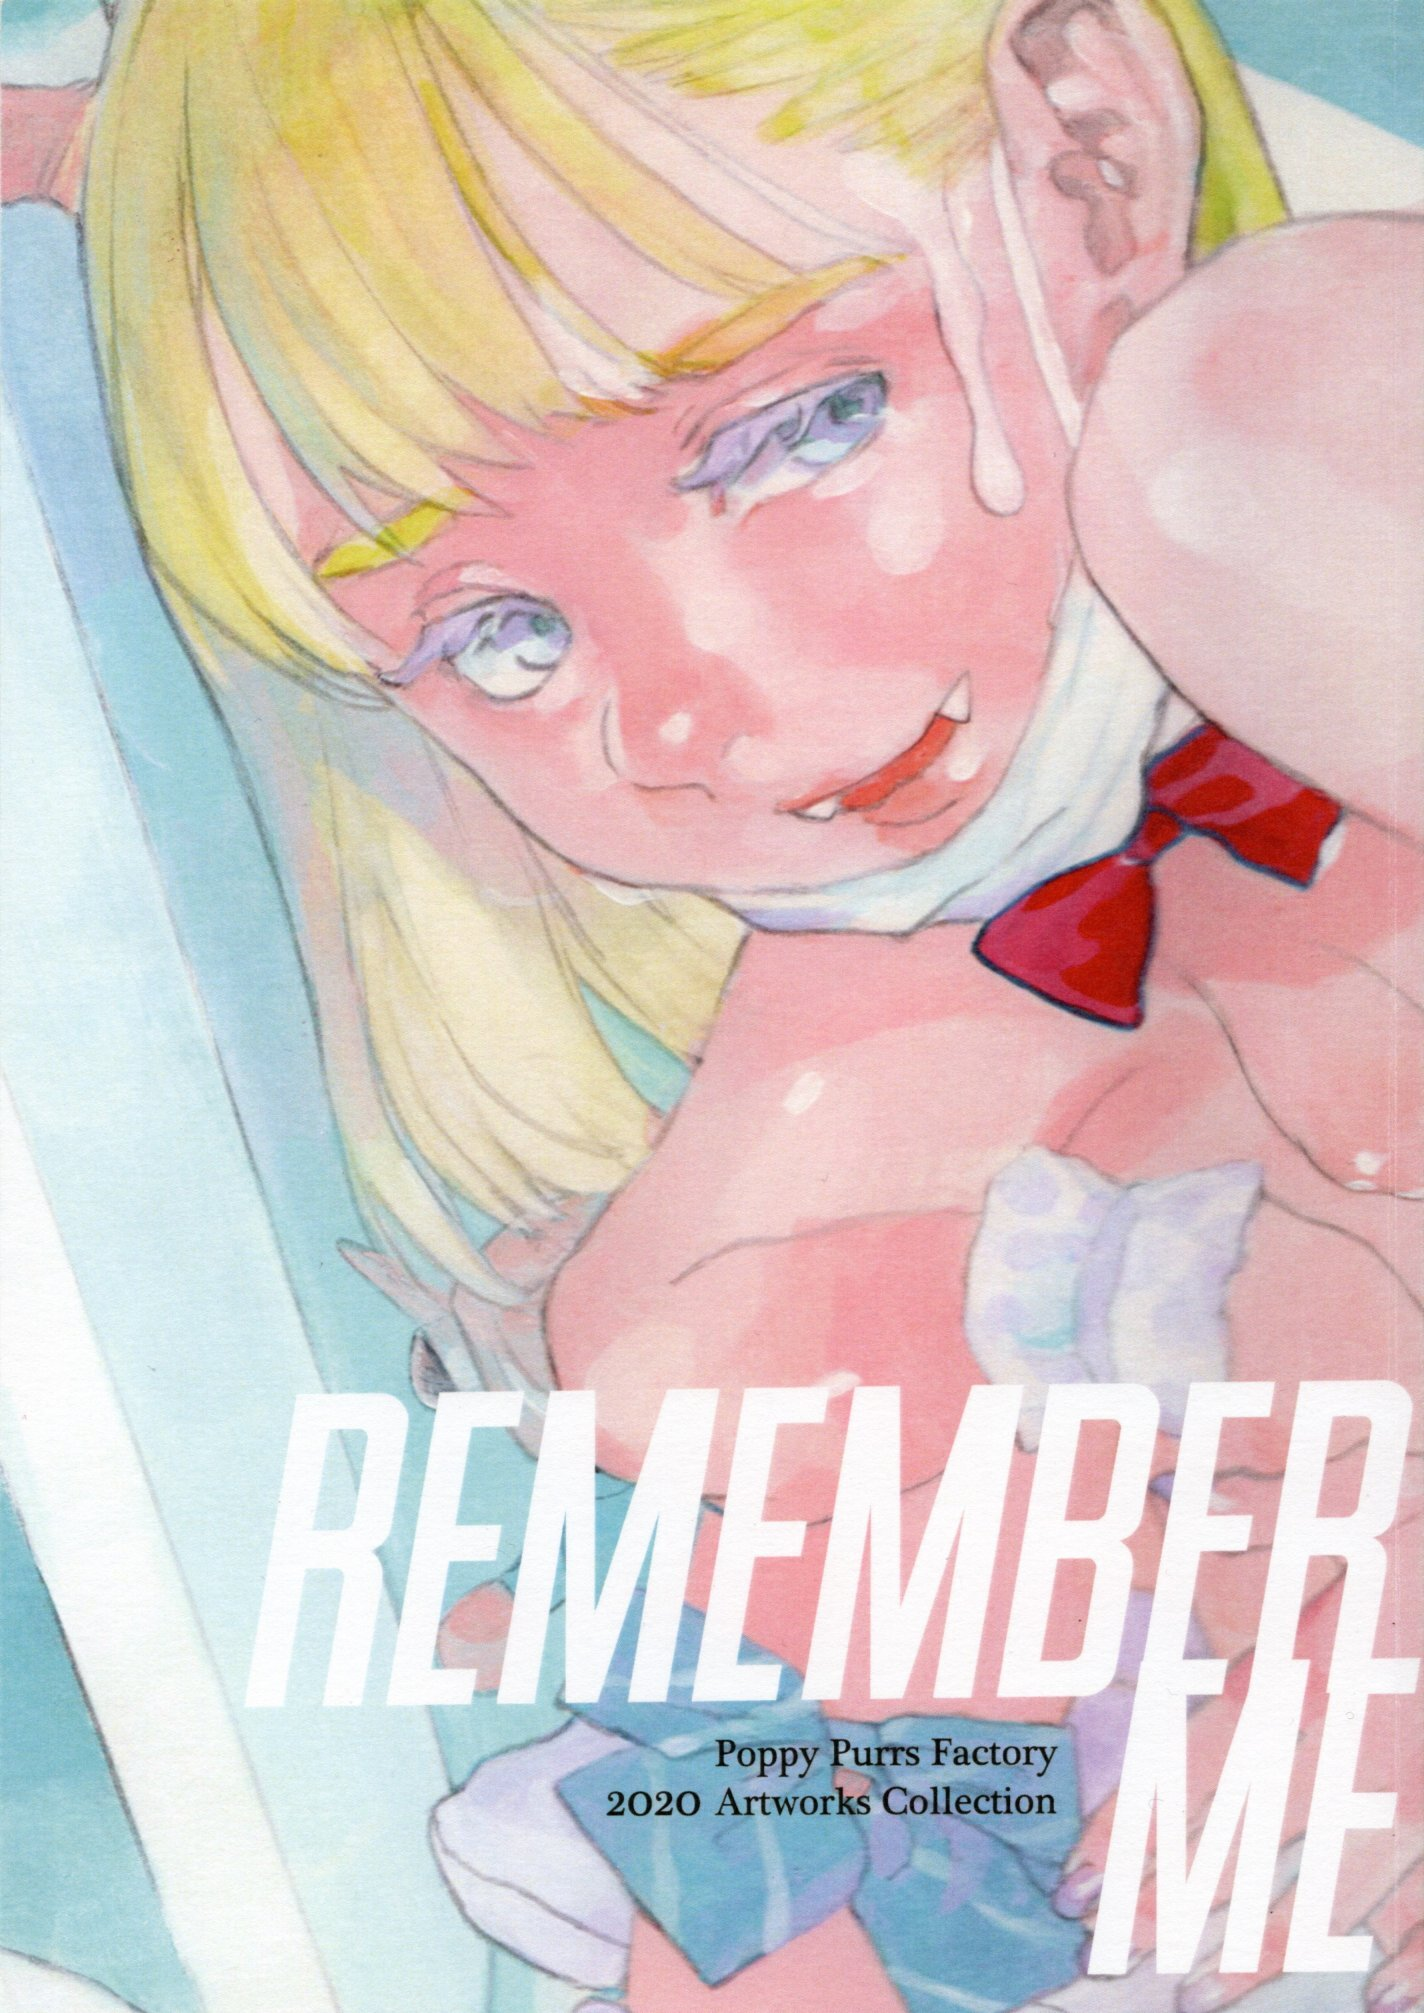 Poppy Purrs Factory / 画集「Remember Me」